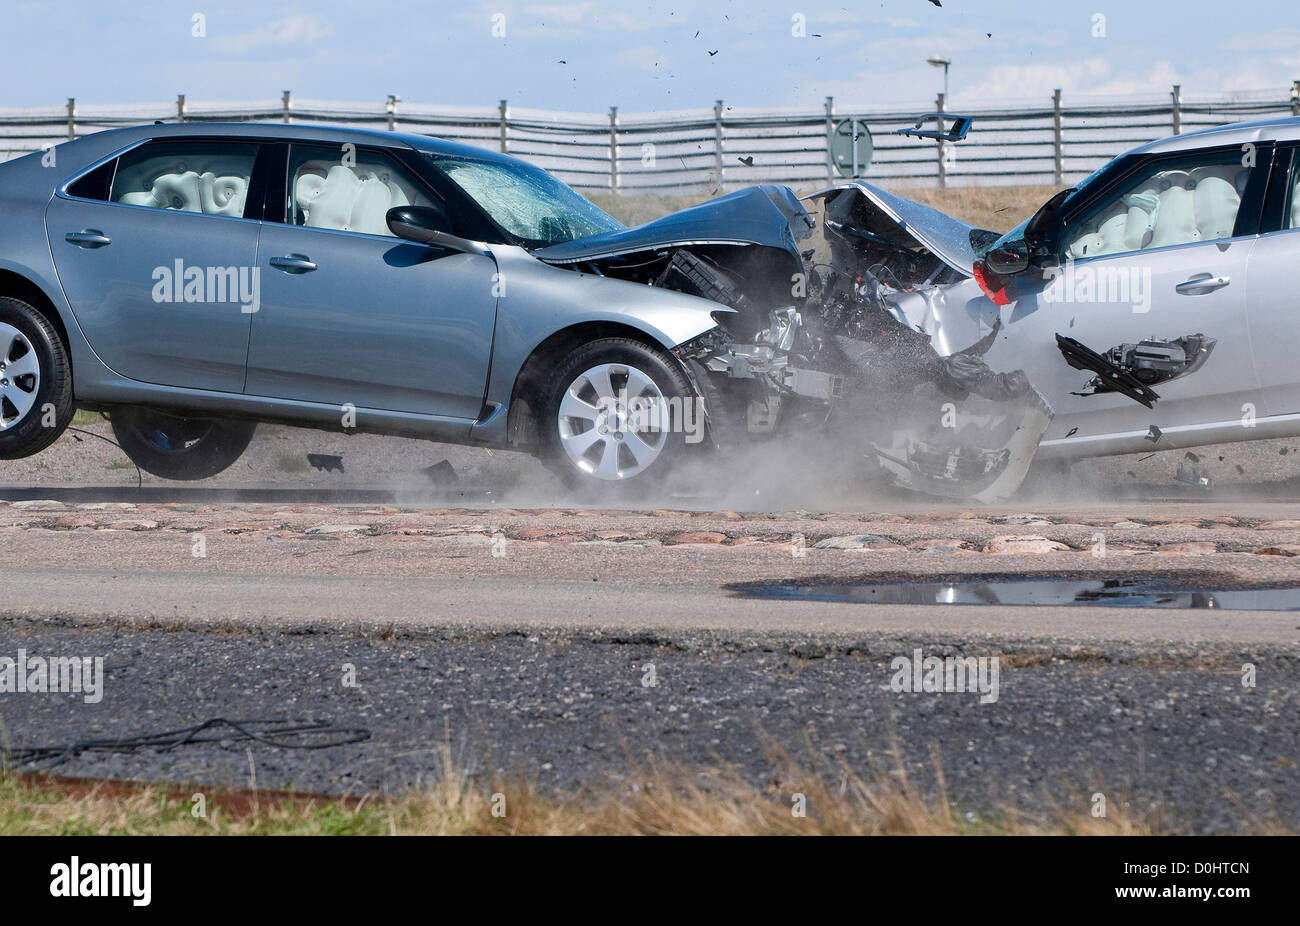 head on collision, crash test, serious accident - Stock Image